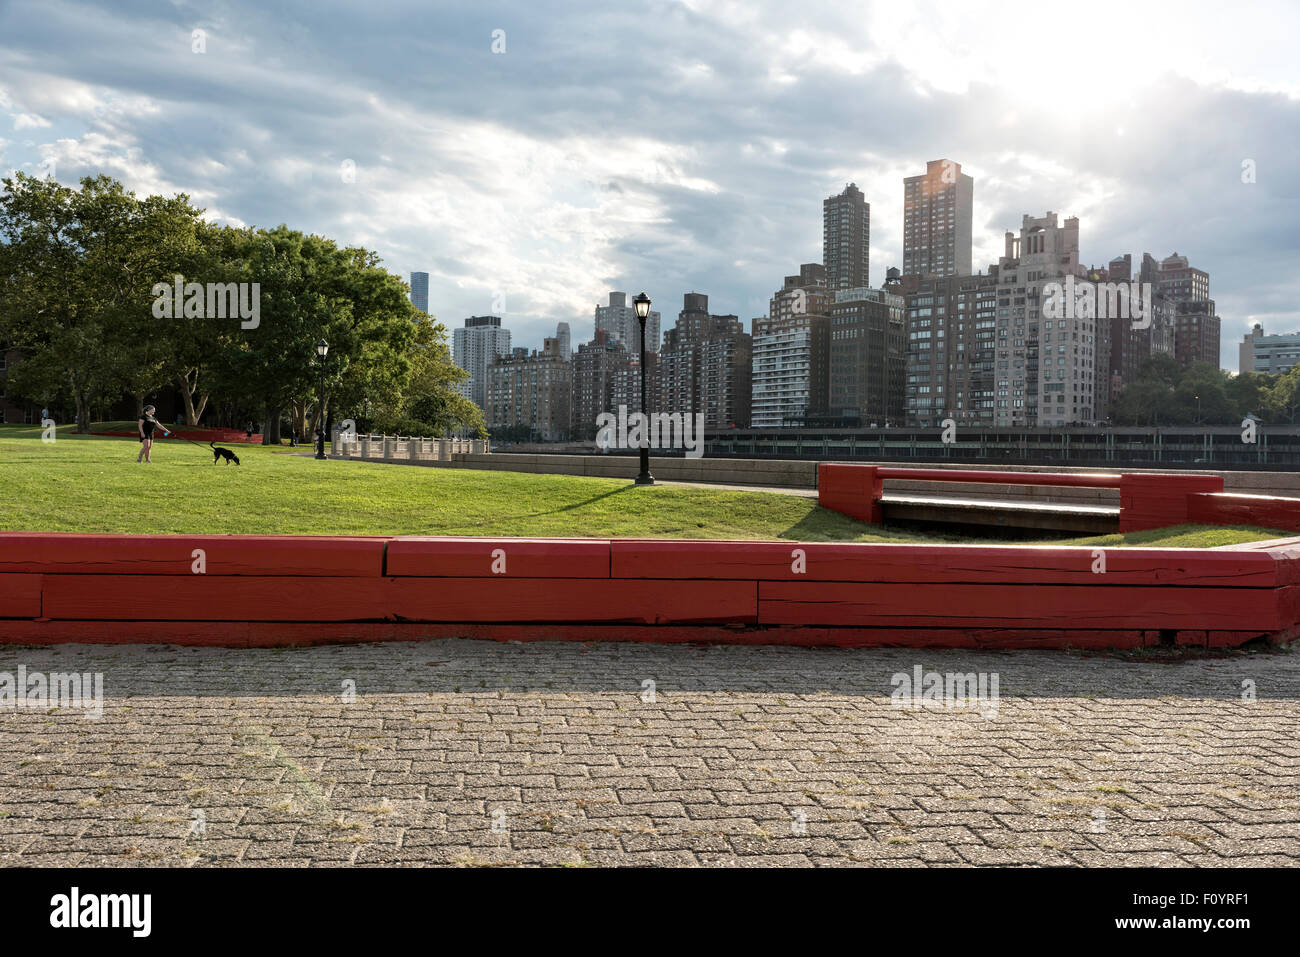 Looking at the East River Skyline of Manhattan, New York City, from Roosevelt Island Lighthouse Park. - Stock Image